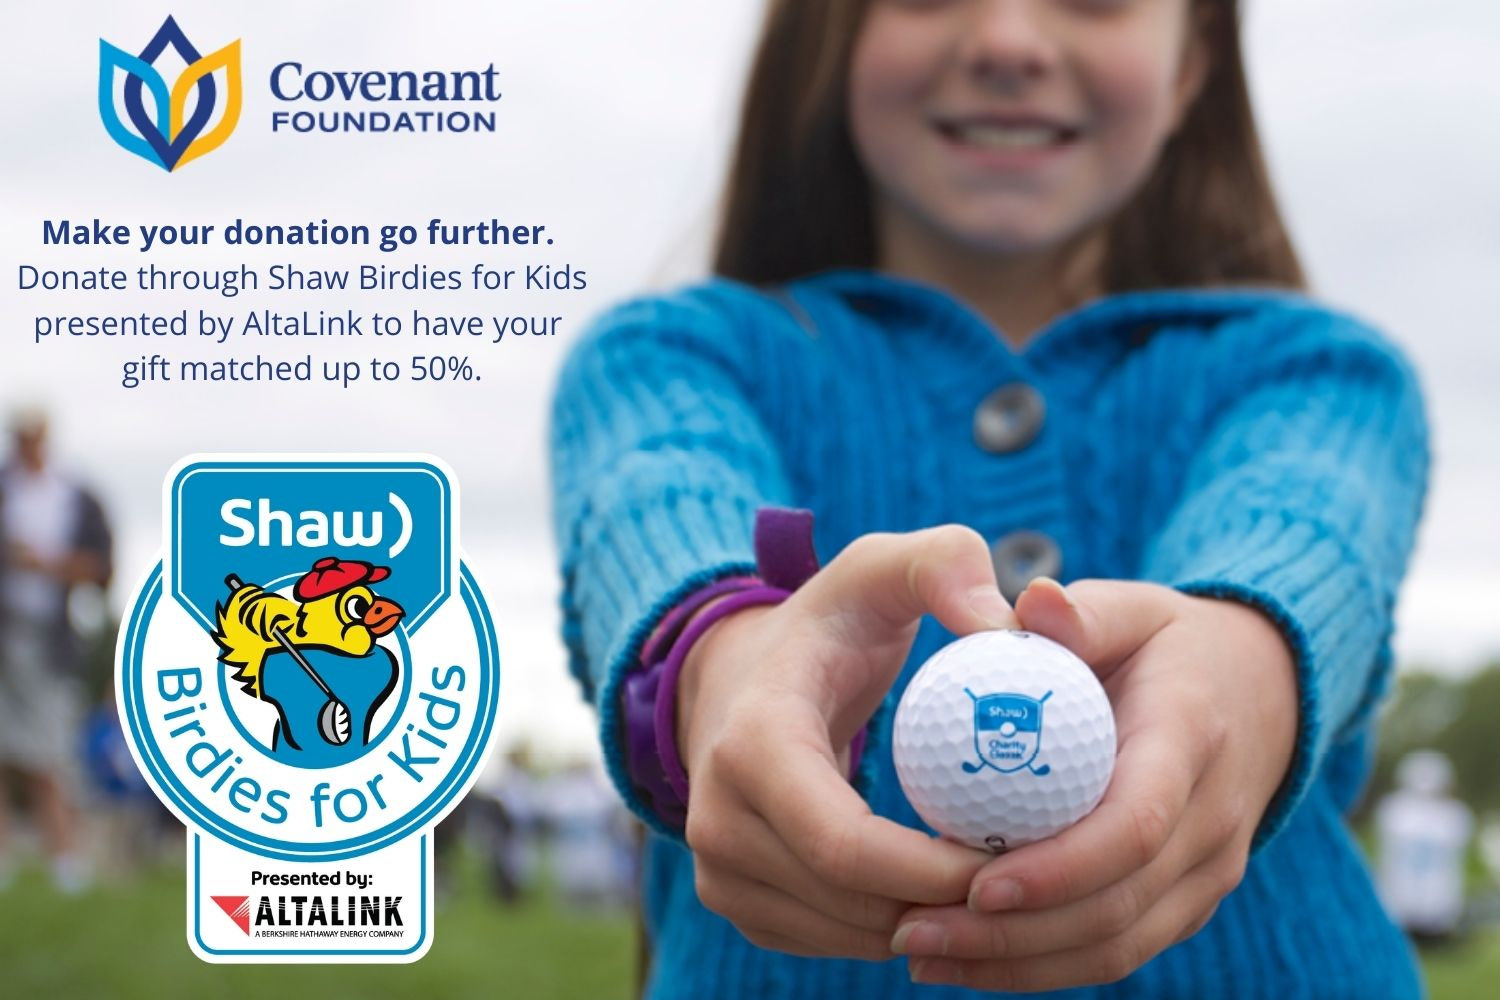 Make your donation go further with Shaw Birdies for Kids presented by AltaLink